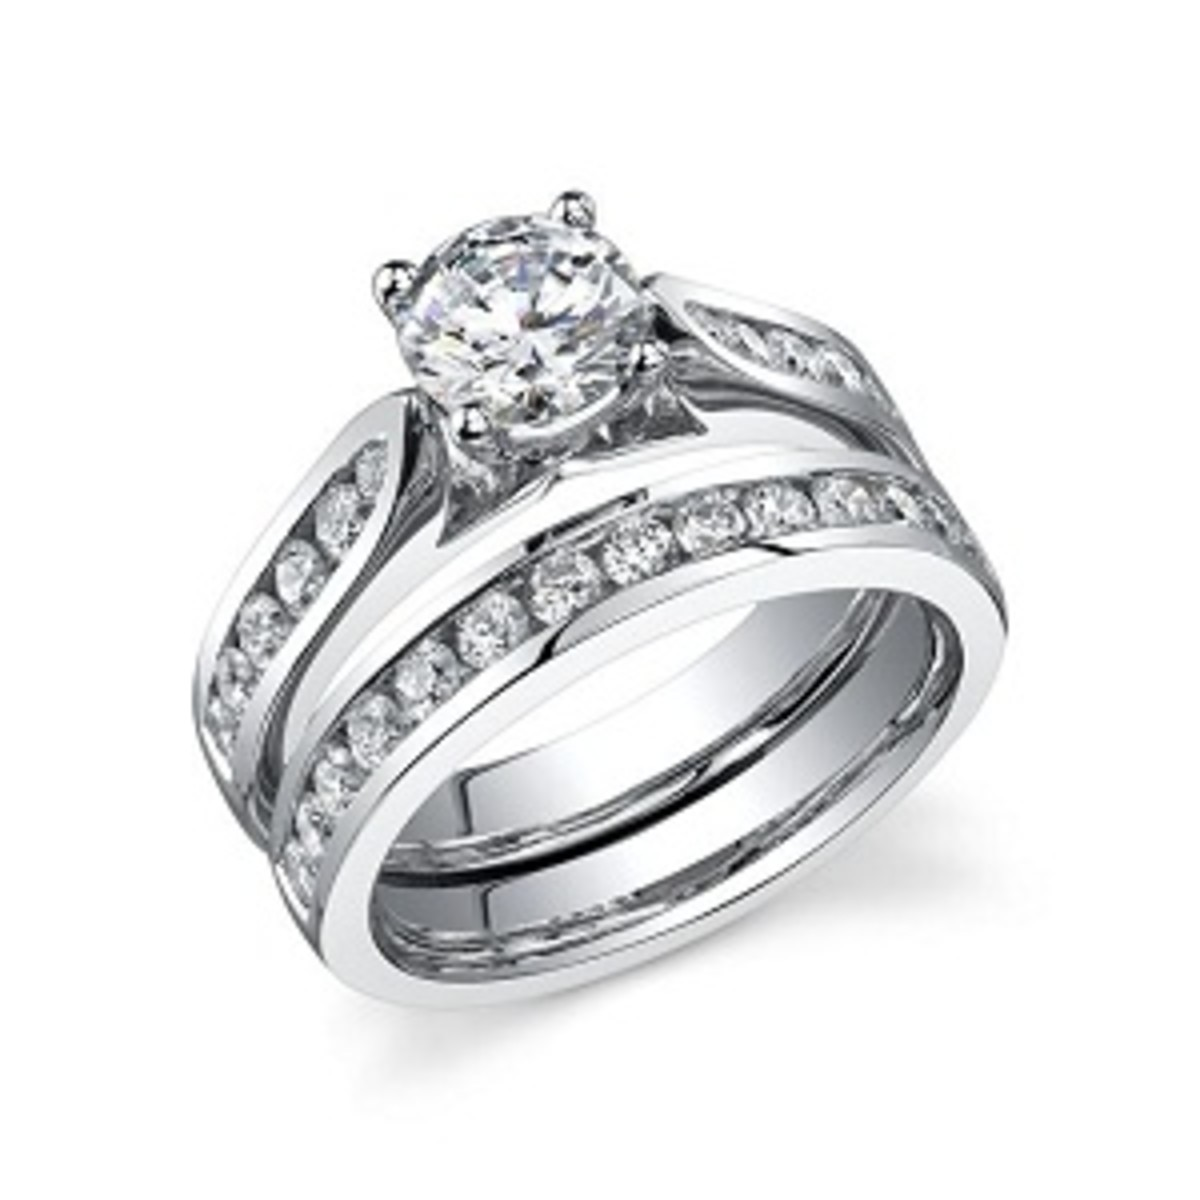 Round Cut Diamond Ring set